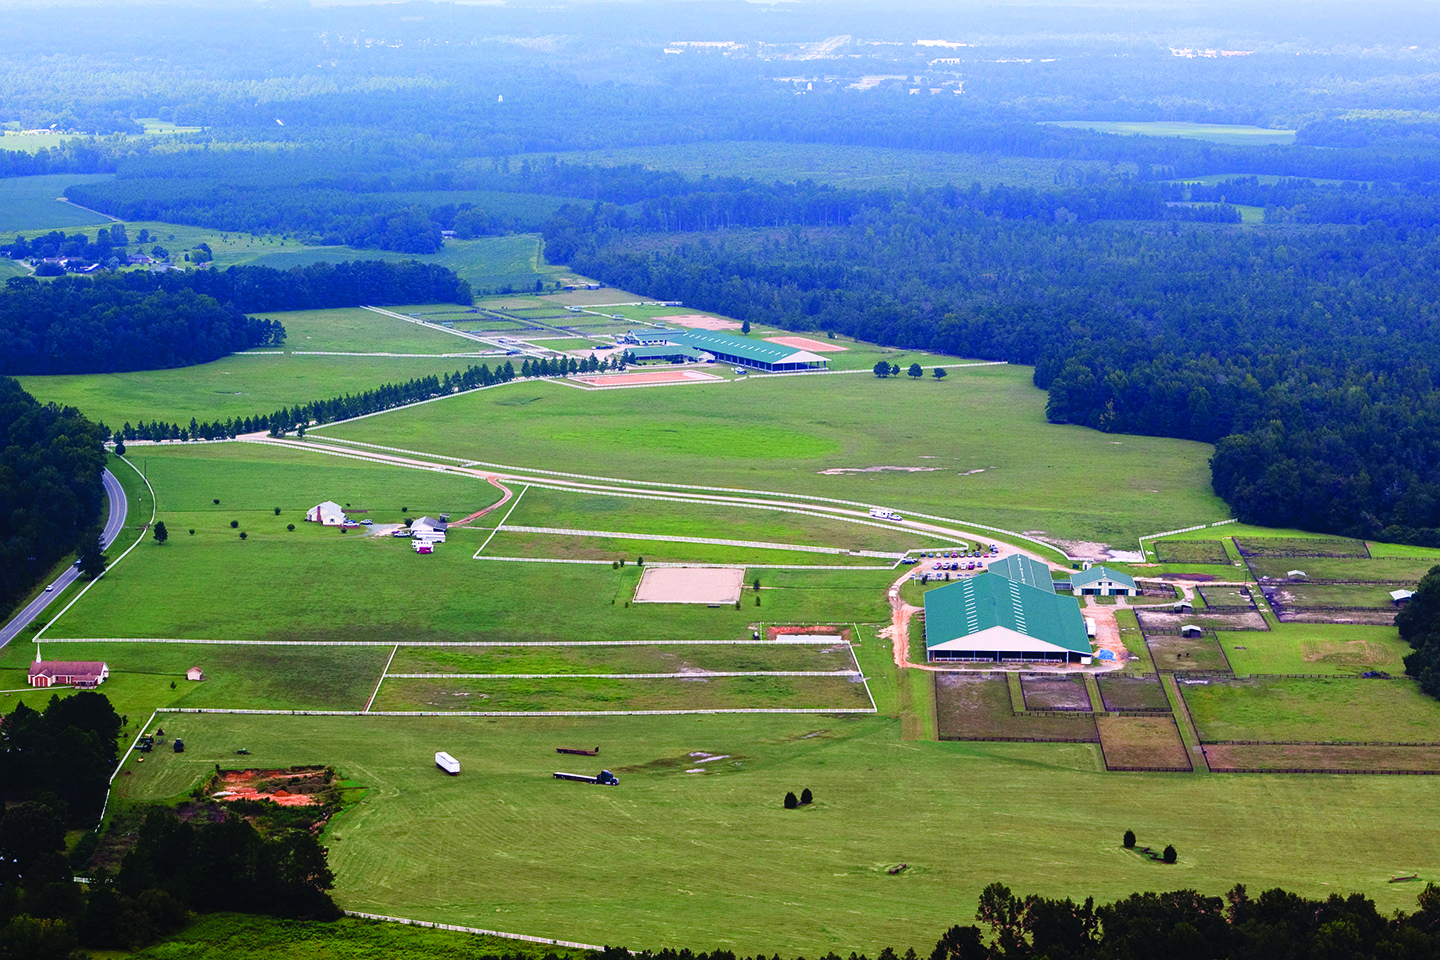 St. Andrews Equestrian Center